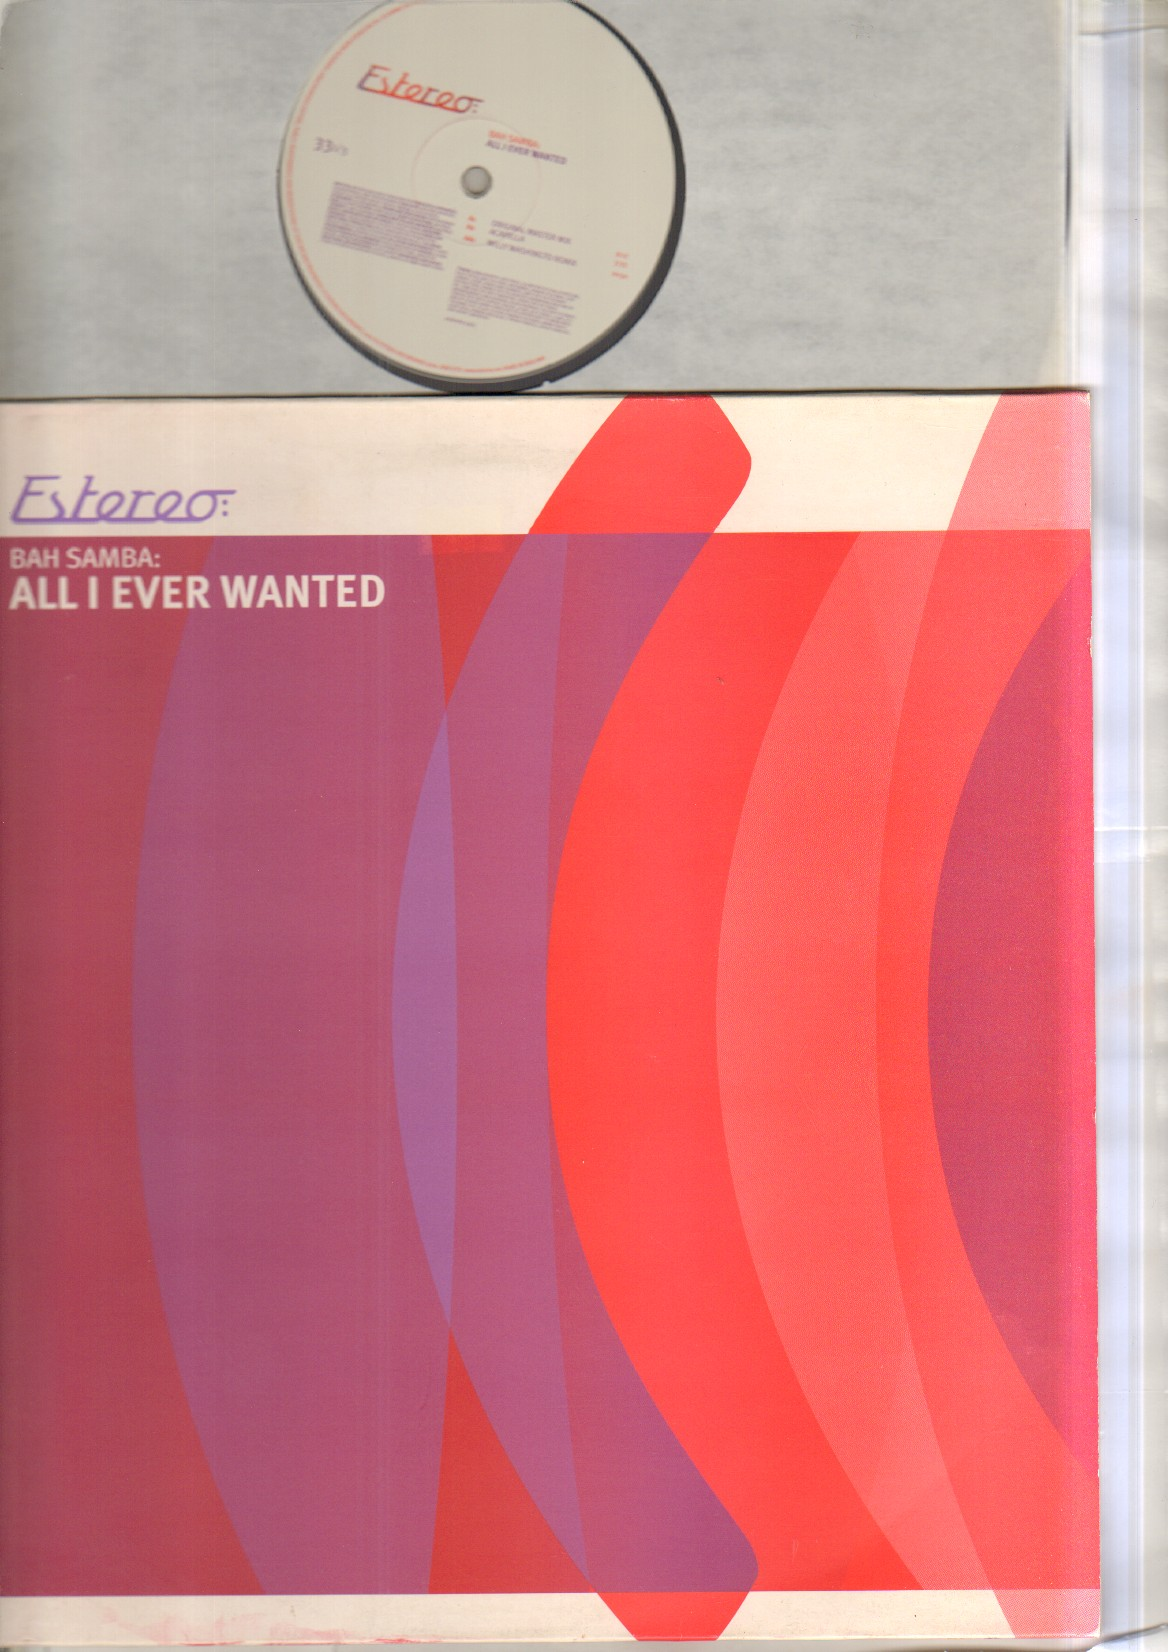 BAH SAMBA - ALL I EVER WANTED - 12 inch 45 rpm